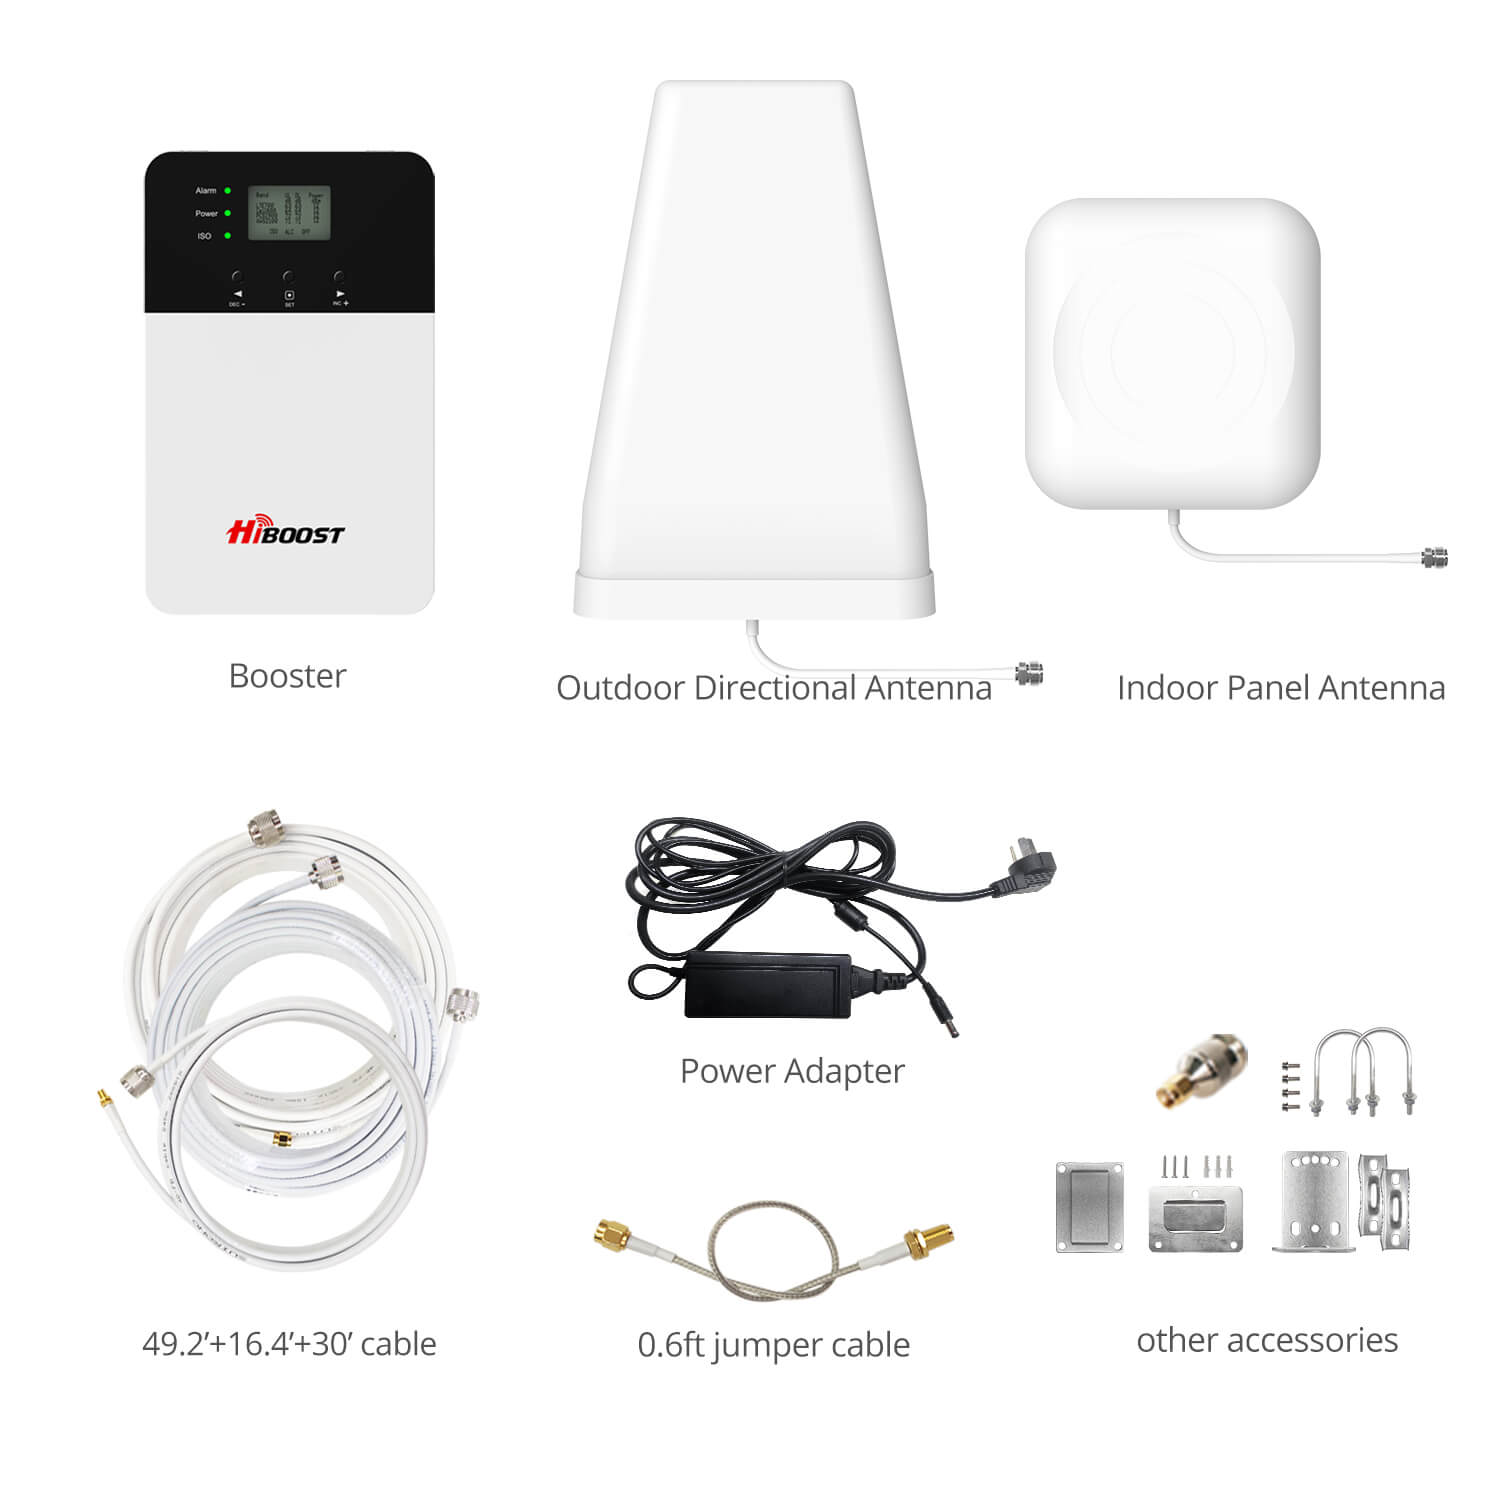 Hiboost-10K-Plus-Pro-Cell-Phone-Signal-Booster-6 (2)